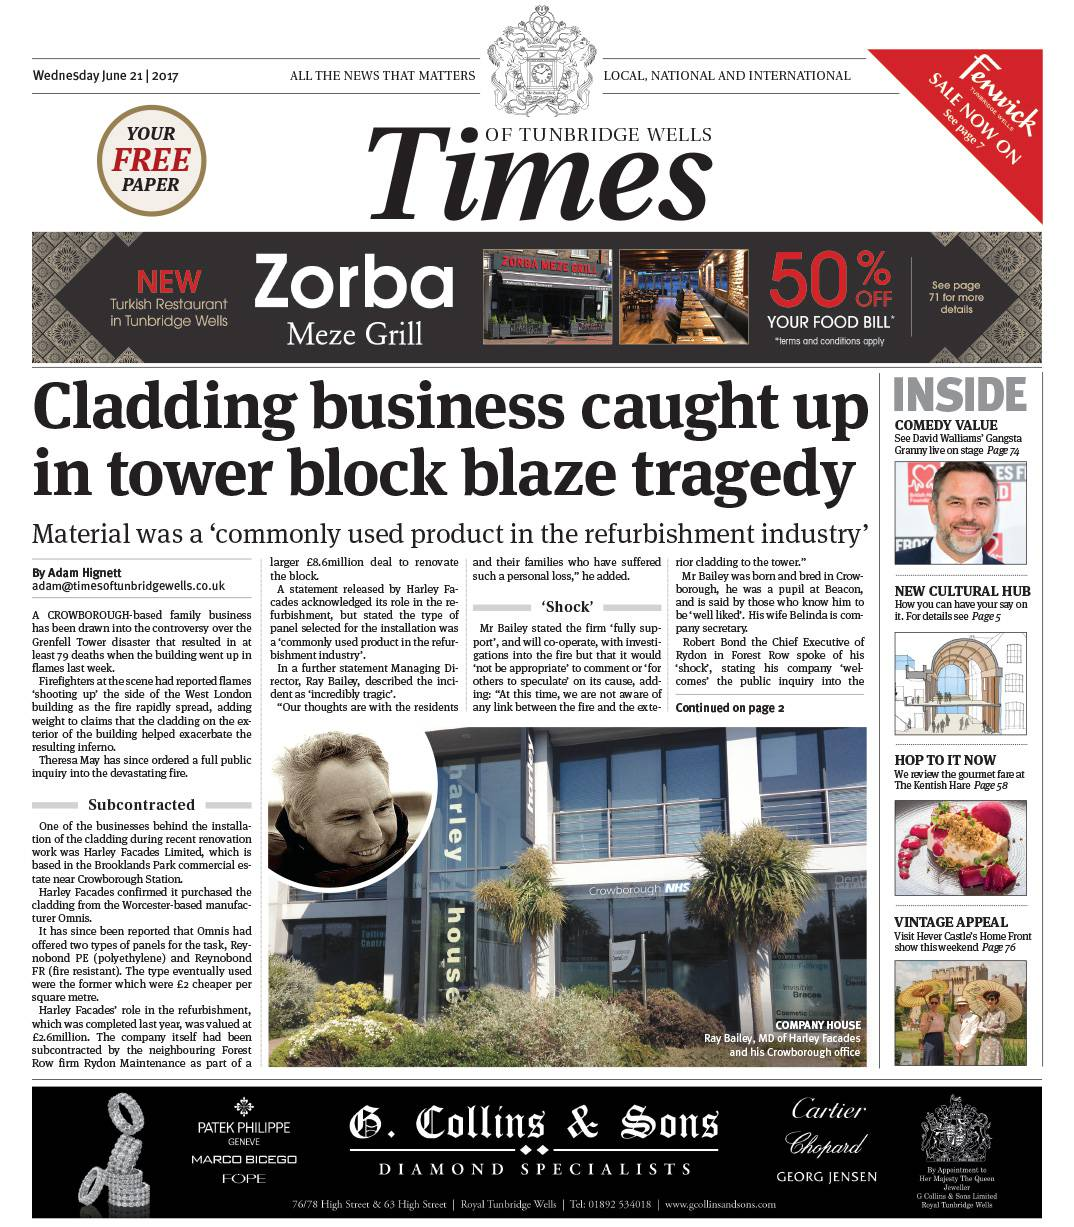 Read the Times of Tunbridge Wells 21st June 2017